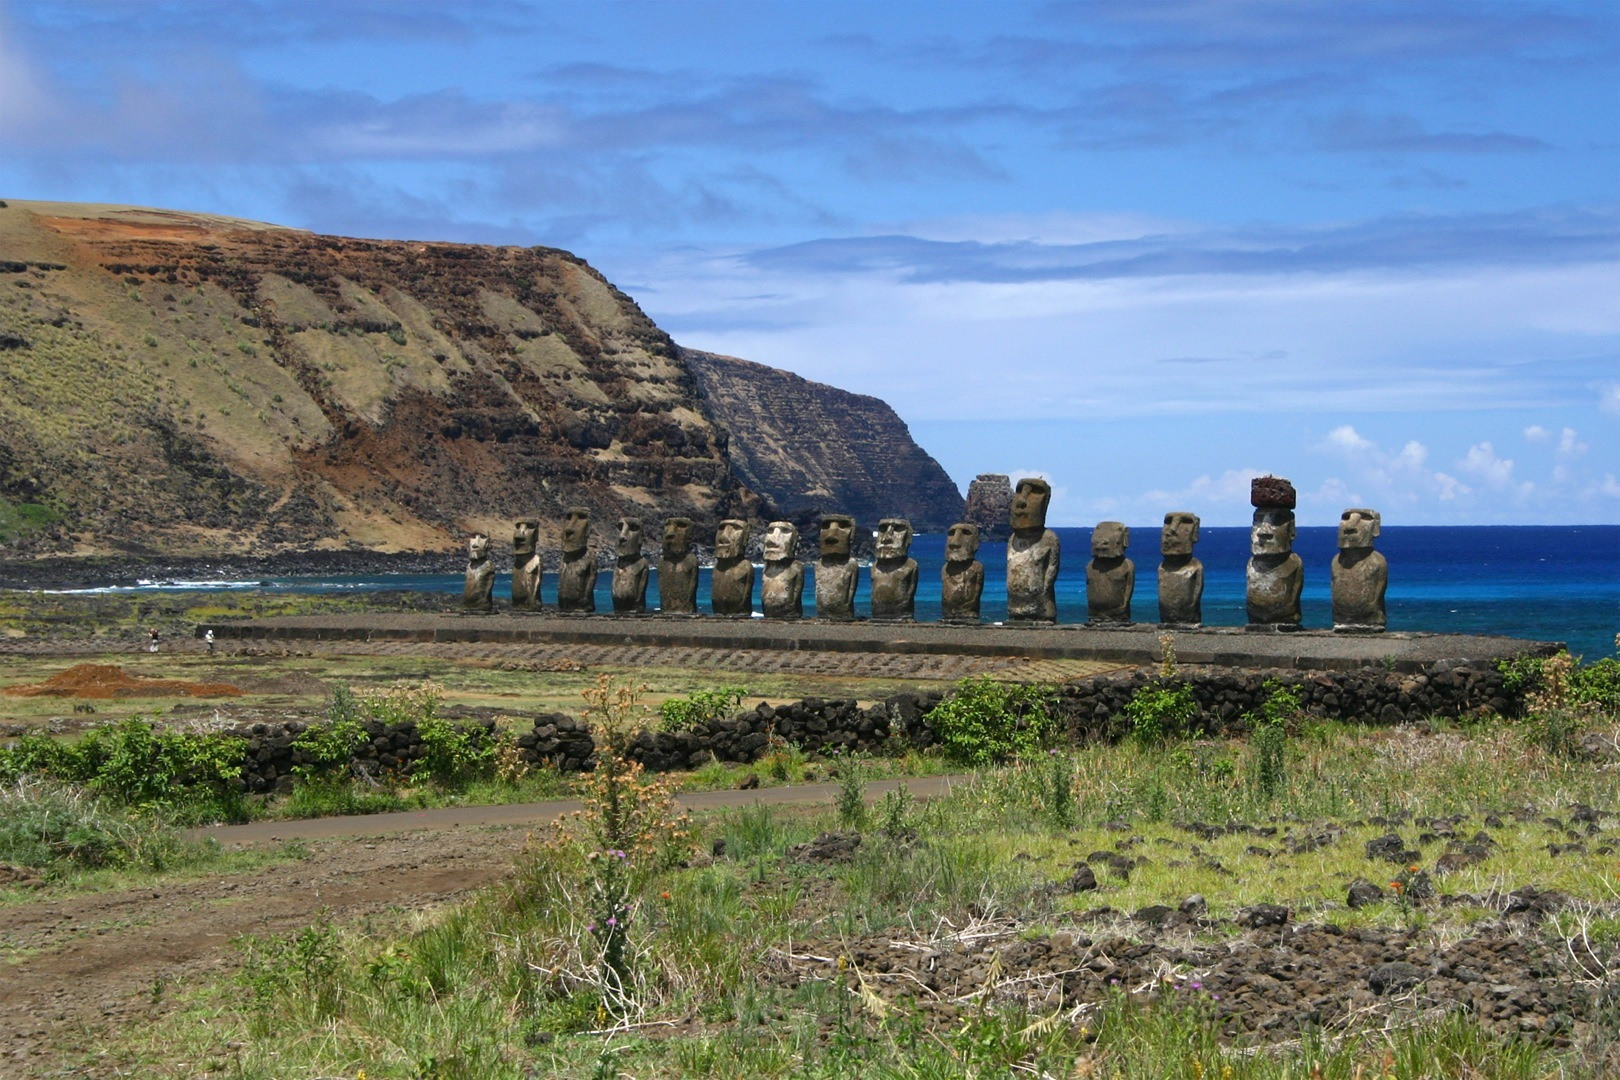 a history of the easter island a remote island in the south pacific The south pacific islands are scattered in a huge ocean larger than all the other oceans put together but its landmasses are tiny the region comprises of around 30 island nations, some mere dots on the atlas.